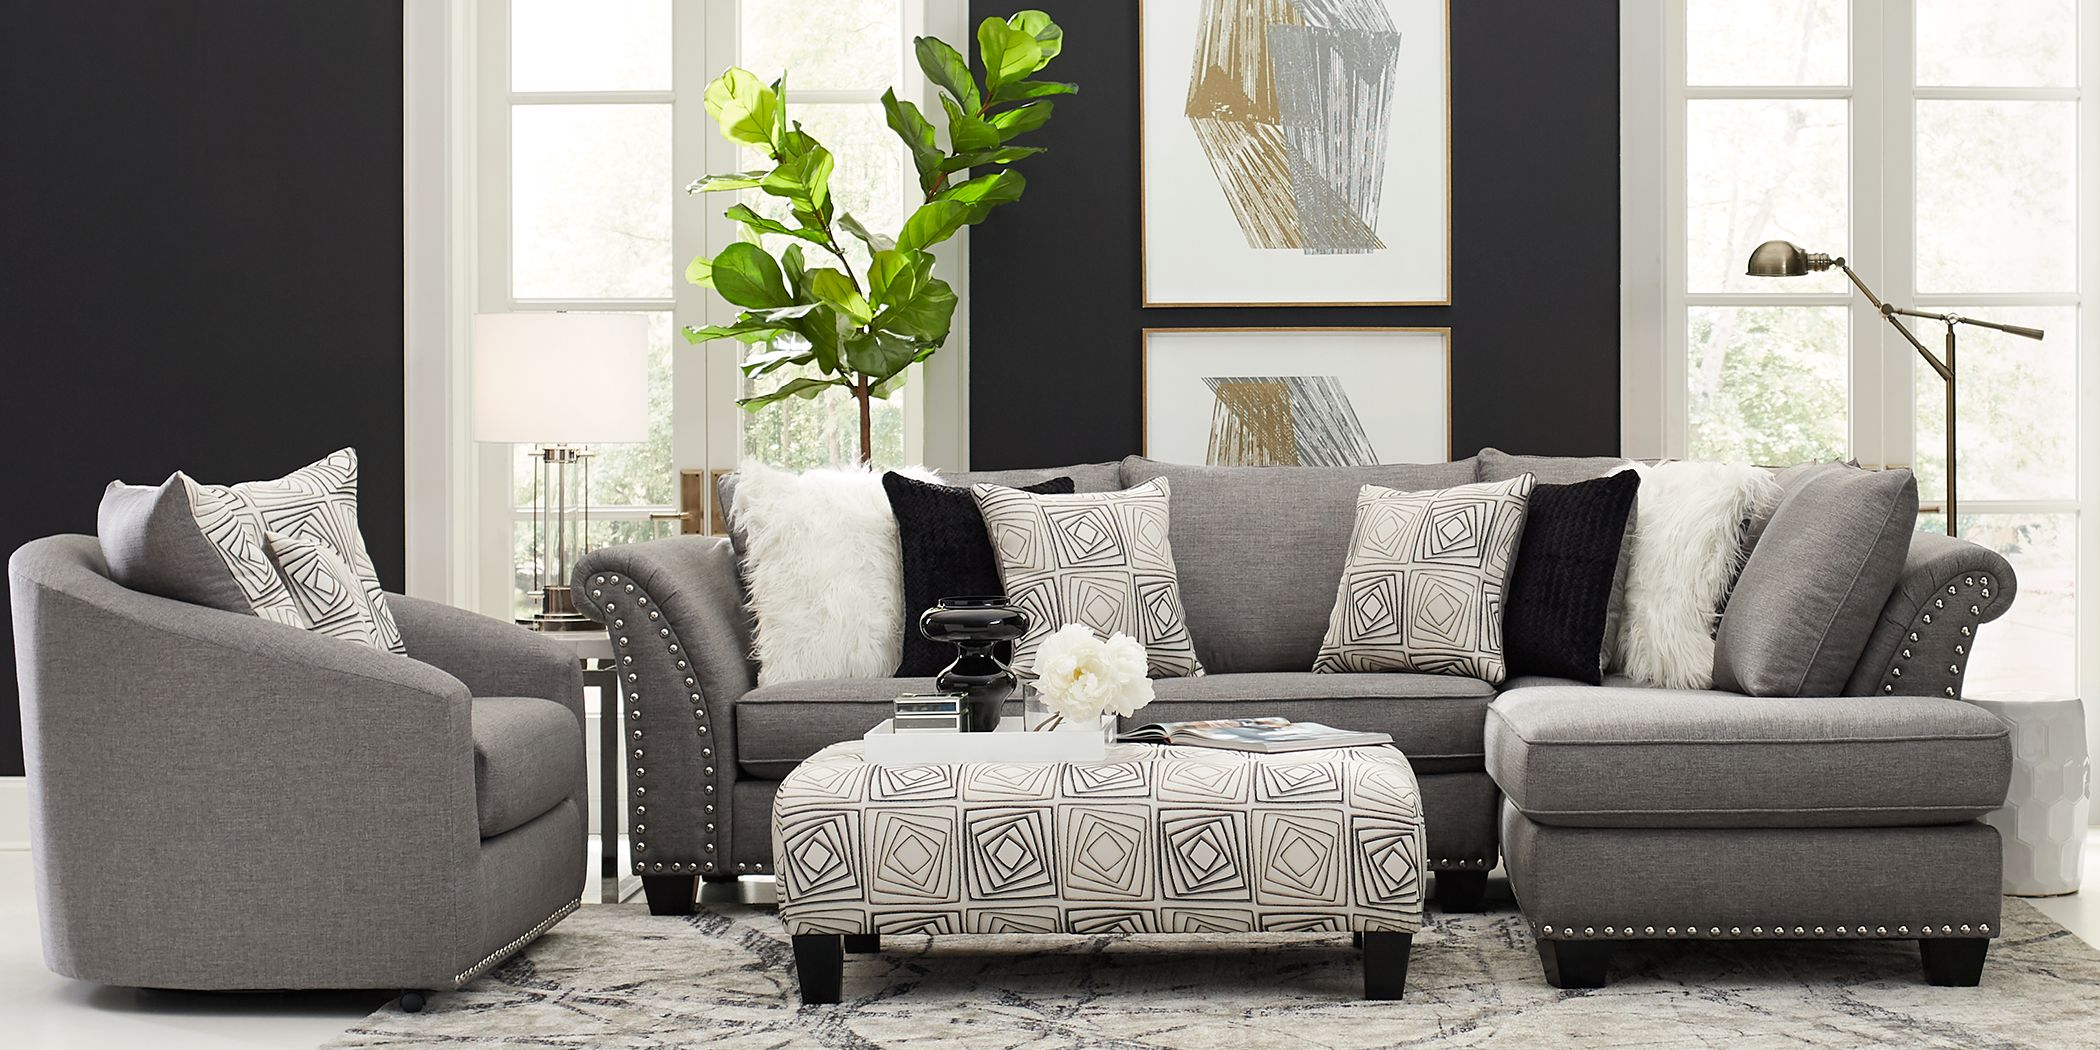 Sofia Vergara Claremont Gray 5 Pc Sectional Living Room